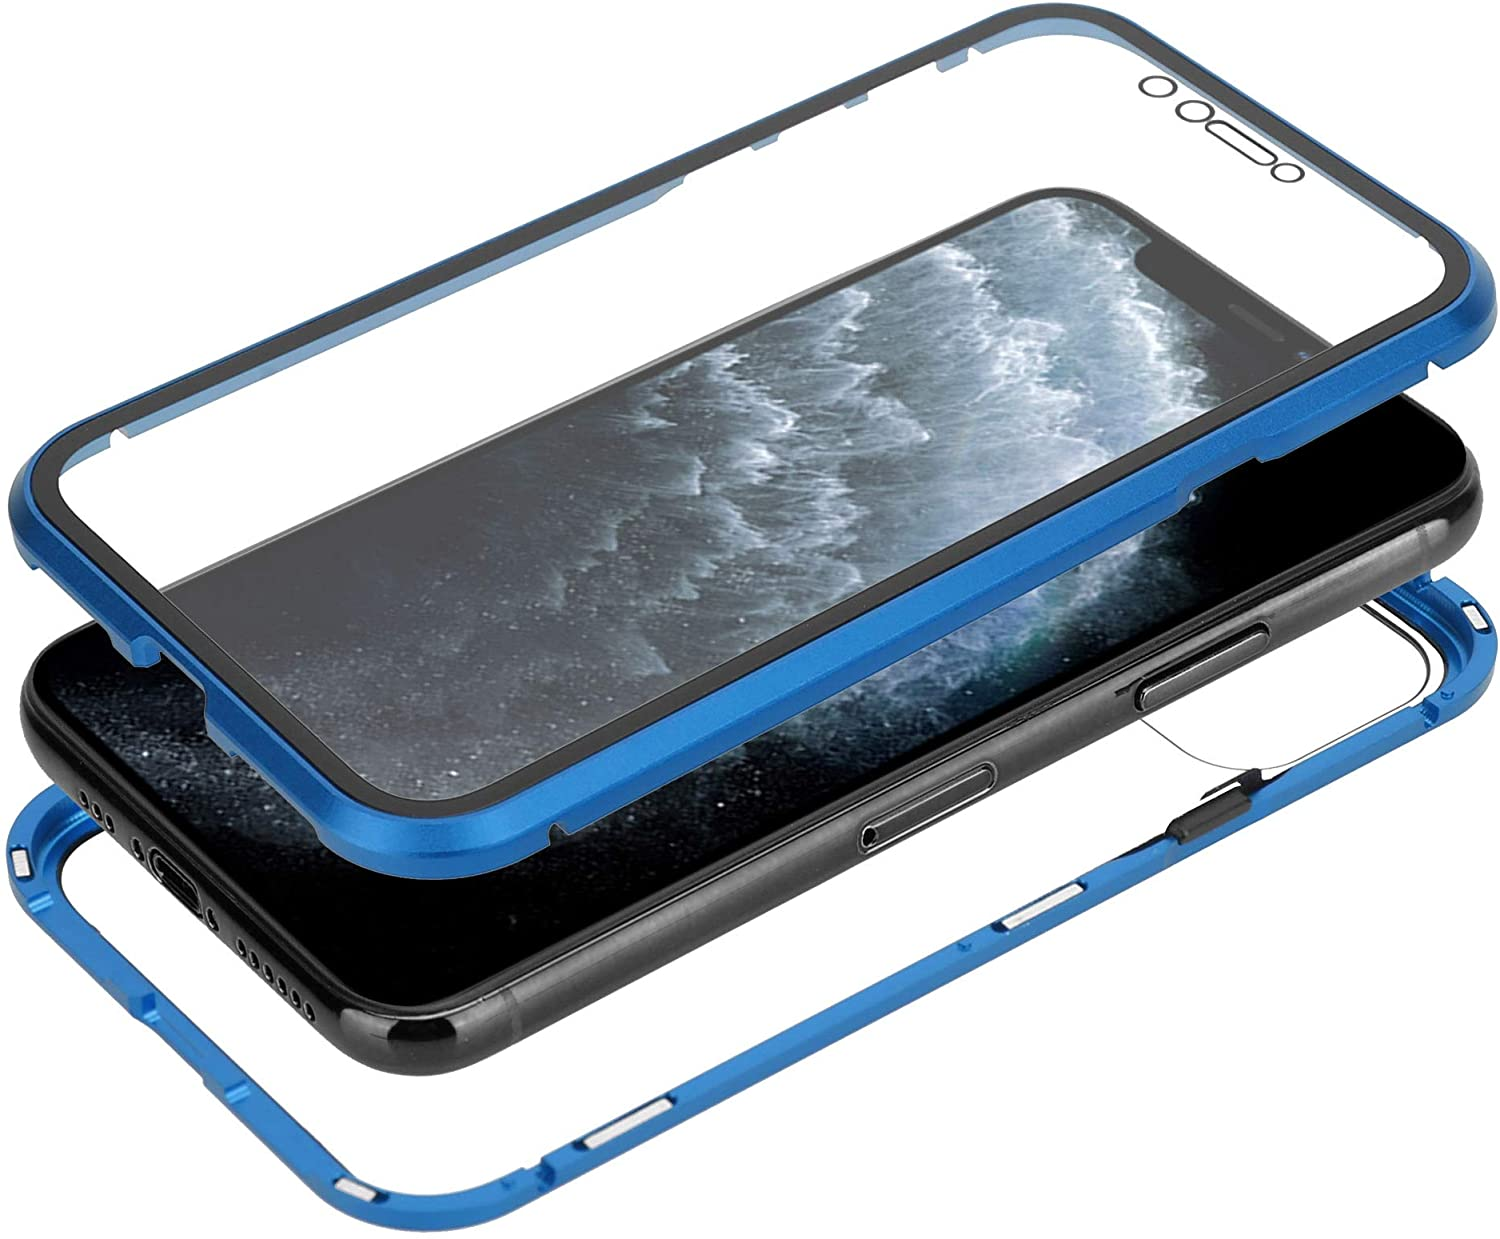 AOZOON iPhone 11 Pro Case with Built-in Screen Protection - Metal Frame with Raised Edges - Wireless Charging Compatible (Blue). You Will GET SE 2020 TPU Rubber Phone Case for iPhone 11Pro for Free.